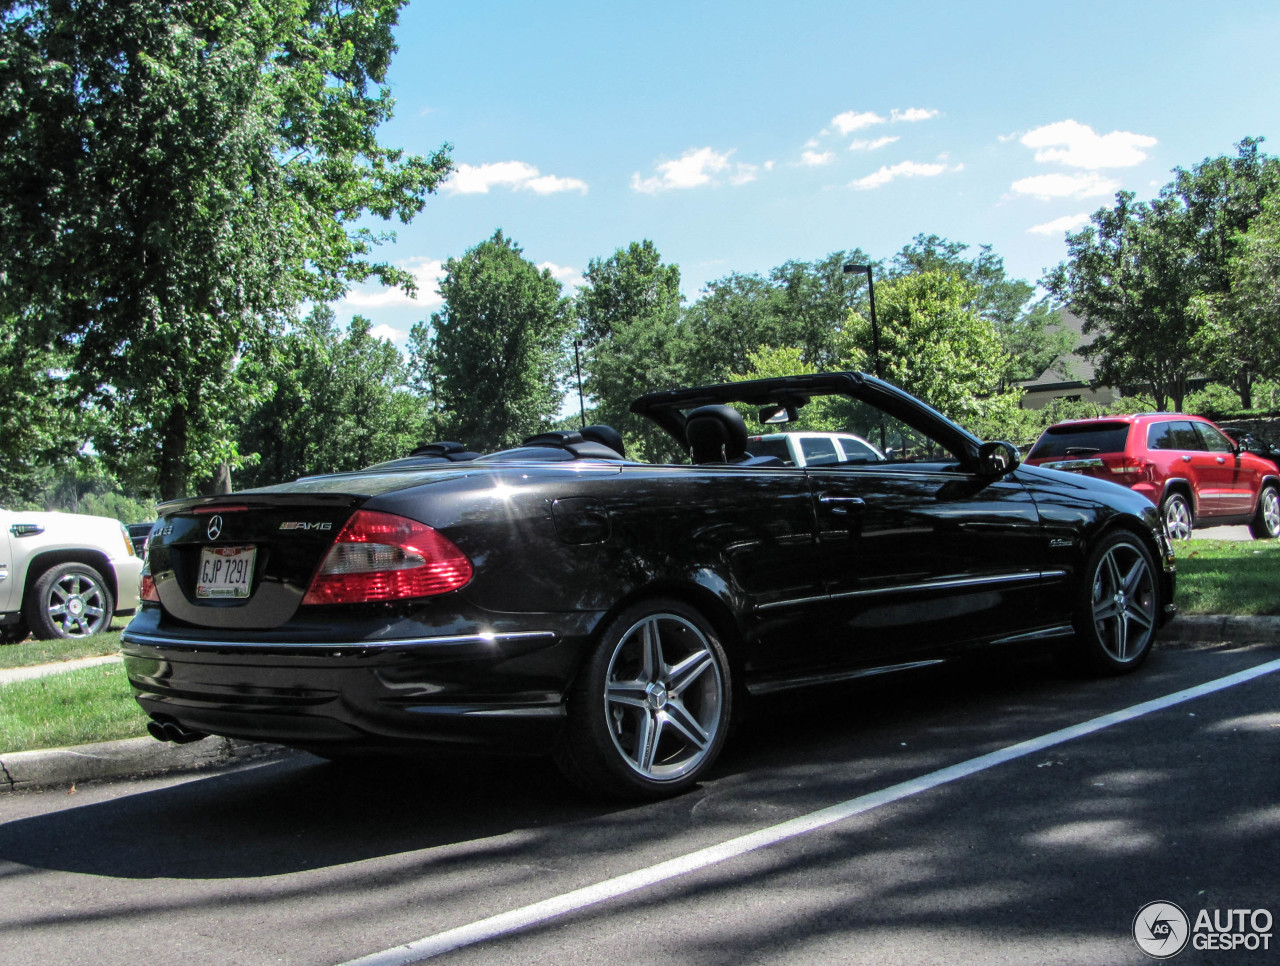 mercedes benz clk 63 amg cabriolet 20 august 2015 autogespot. Black Bedroom Furniture Sets. Home Design Ideas